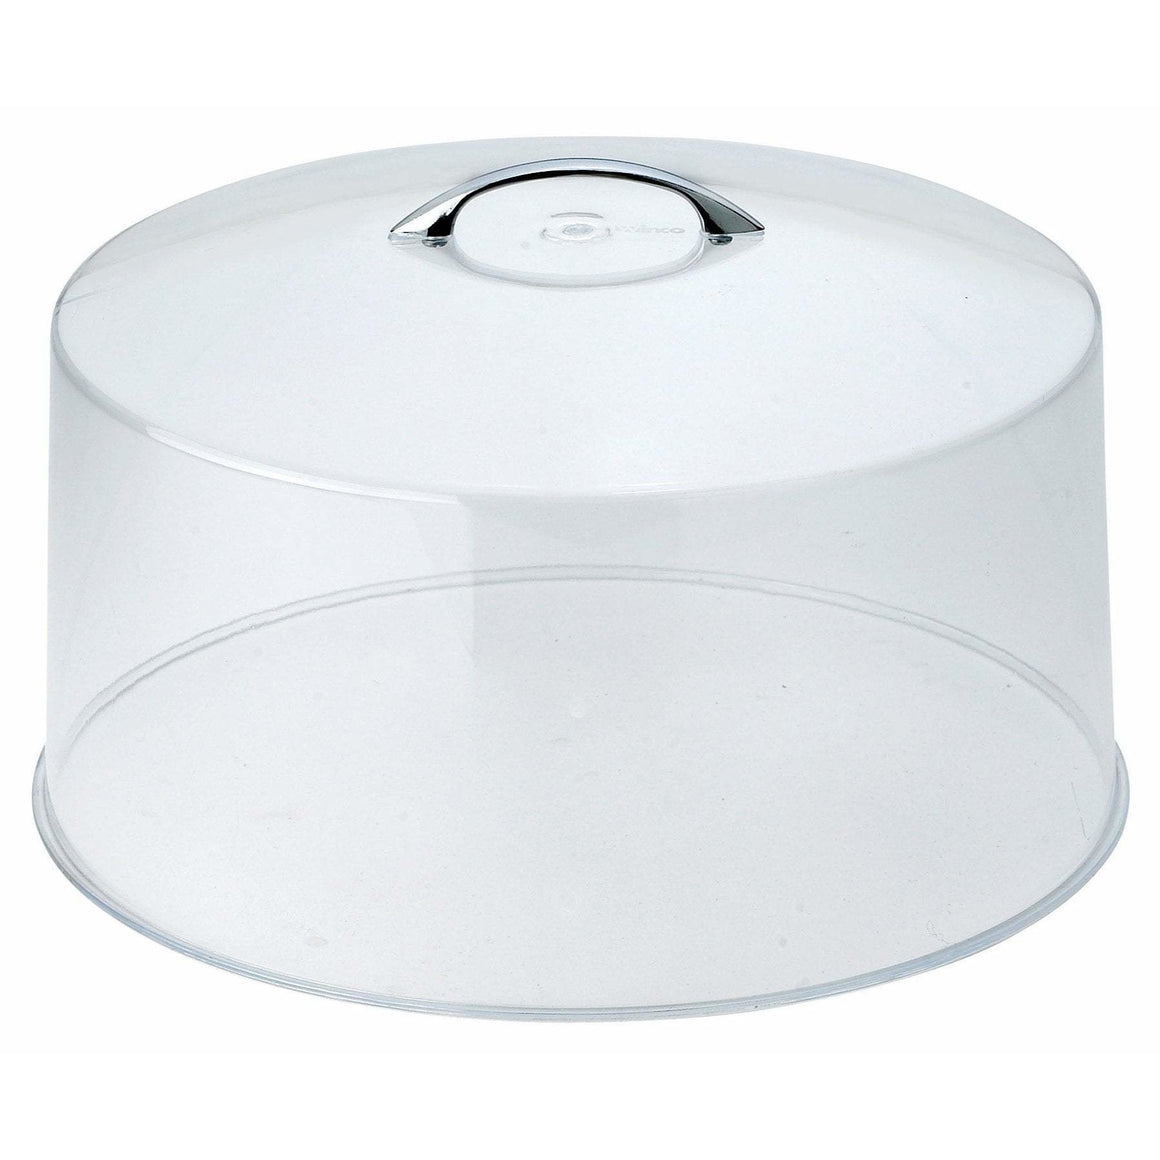 Winco - CKS-13C - Cover for CKS-13 Cake Stand - Display